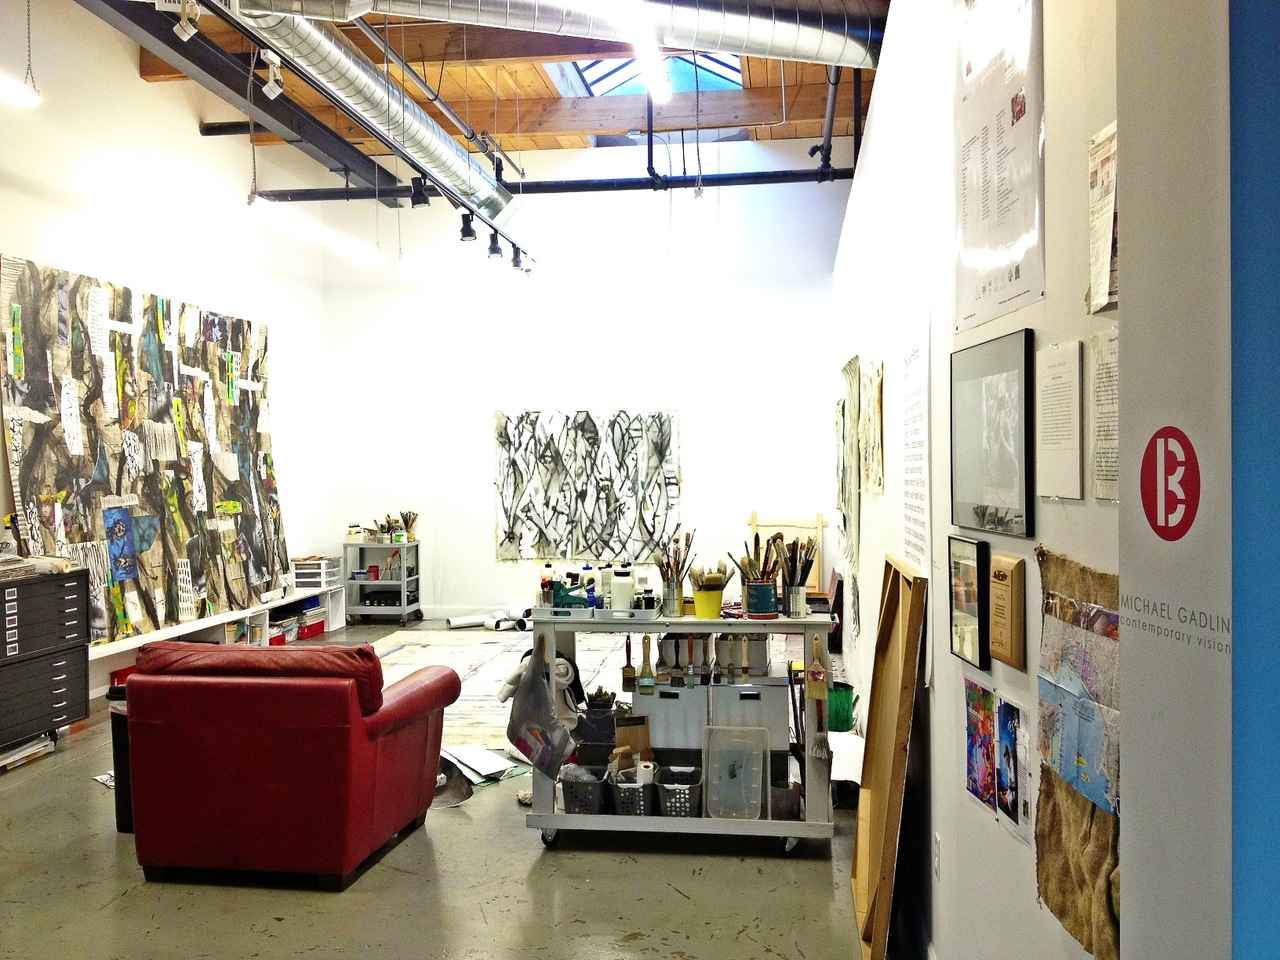 The art studio. #arthaus #MCGadlin